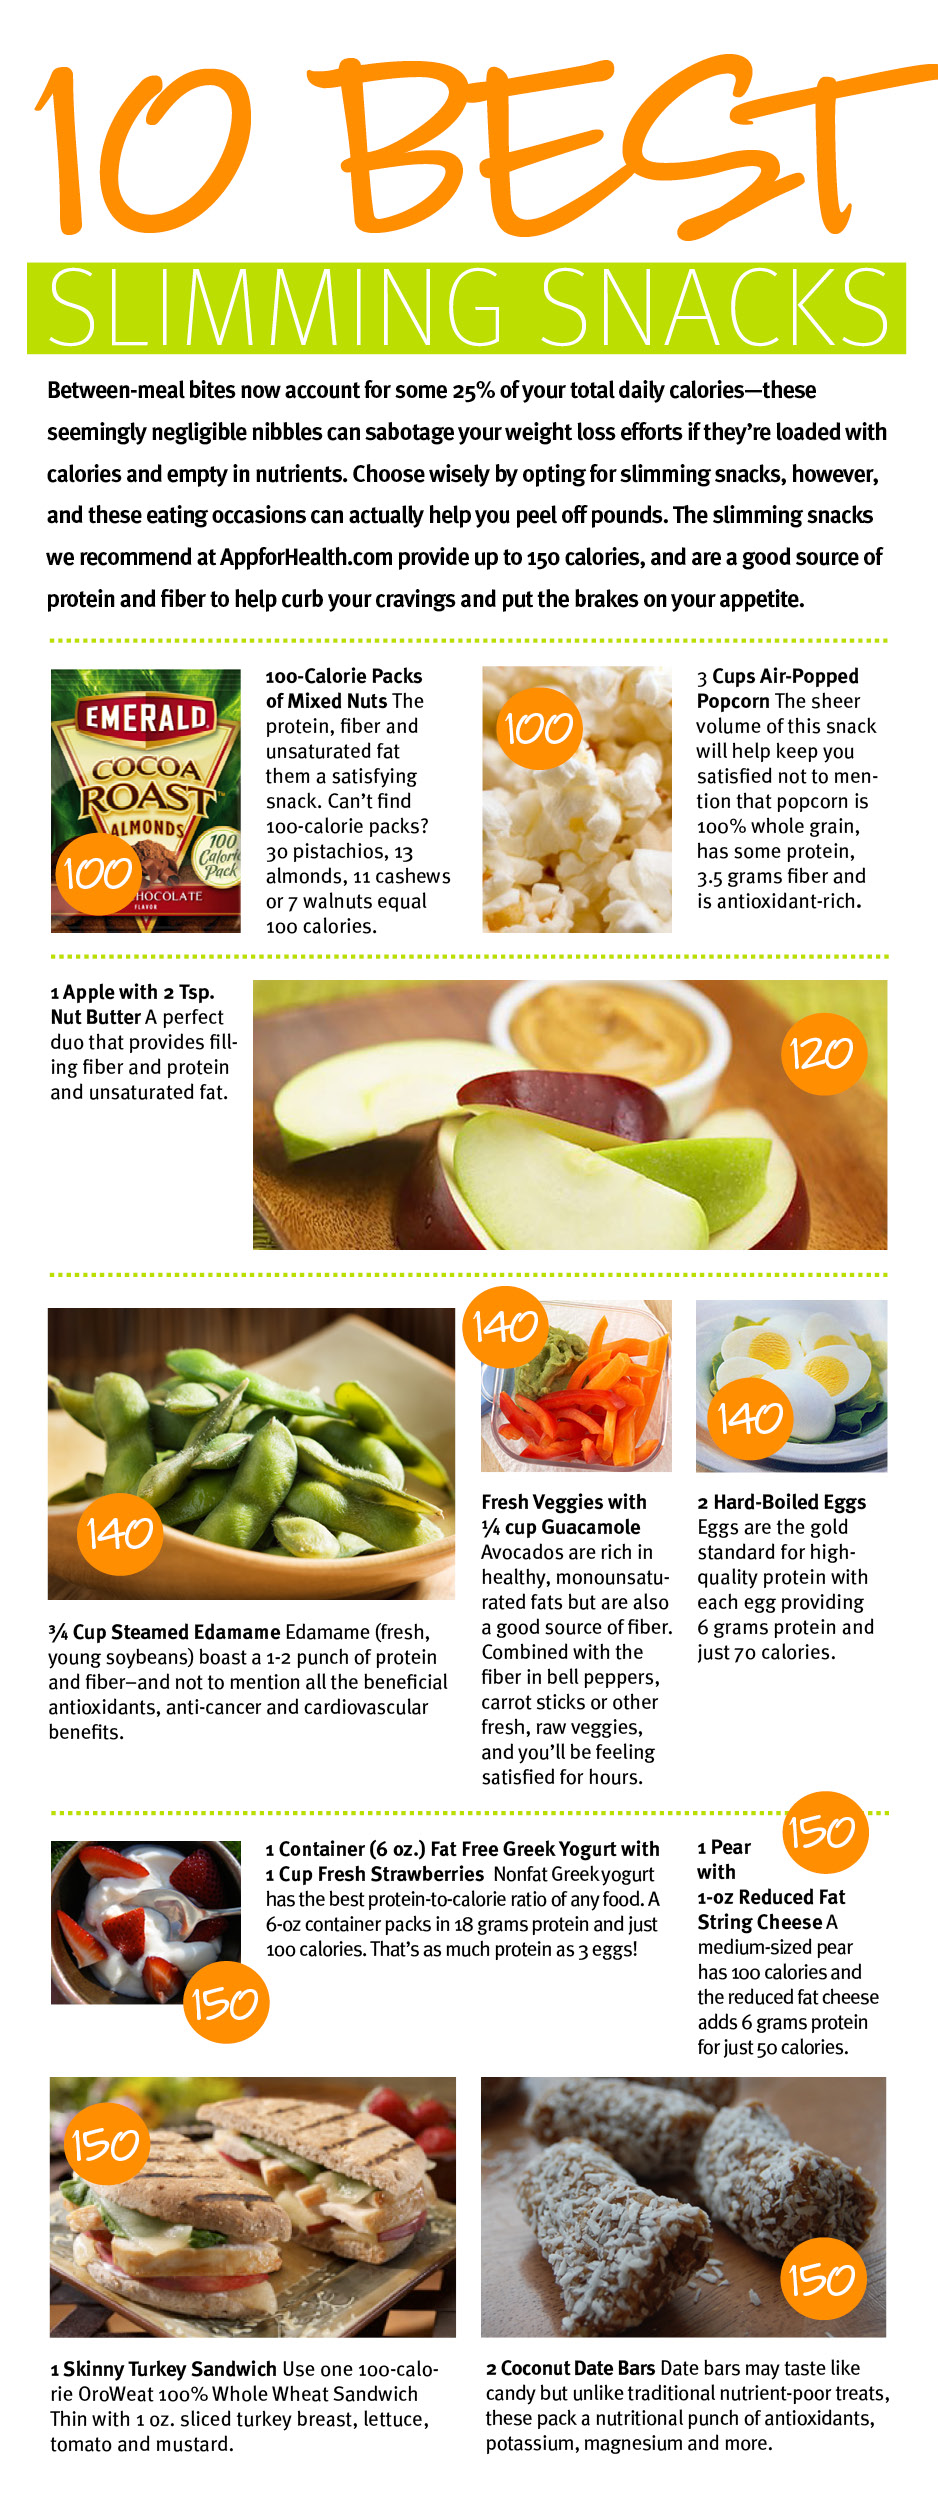 10 best slimming snacks